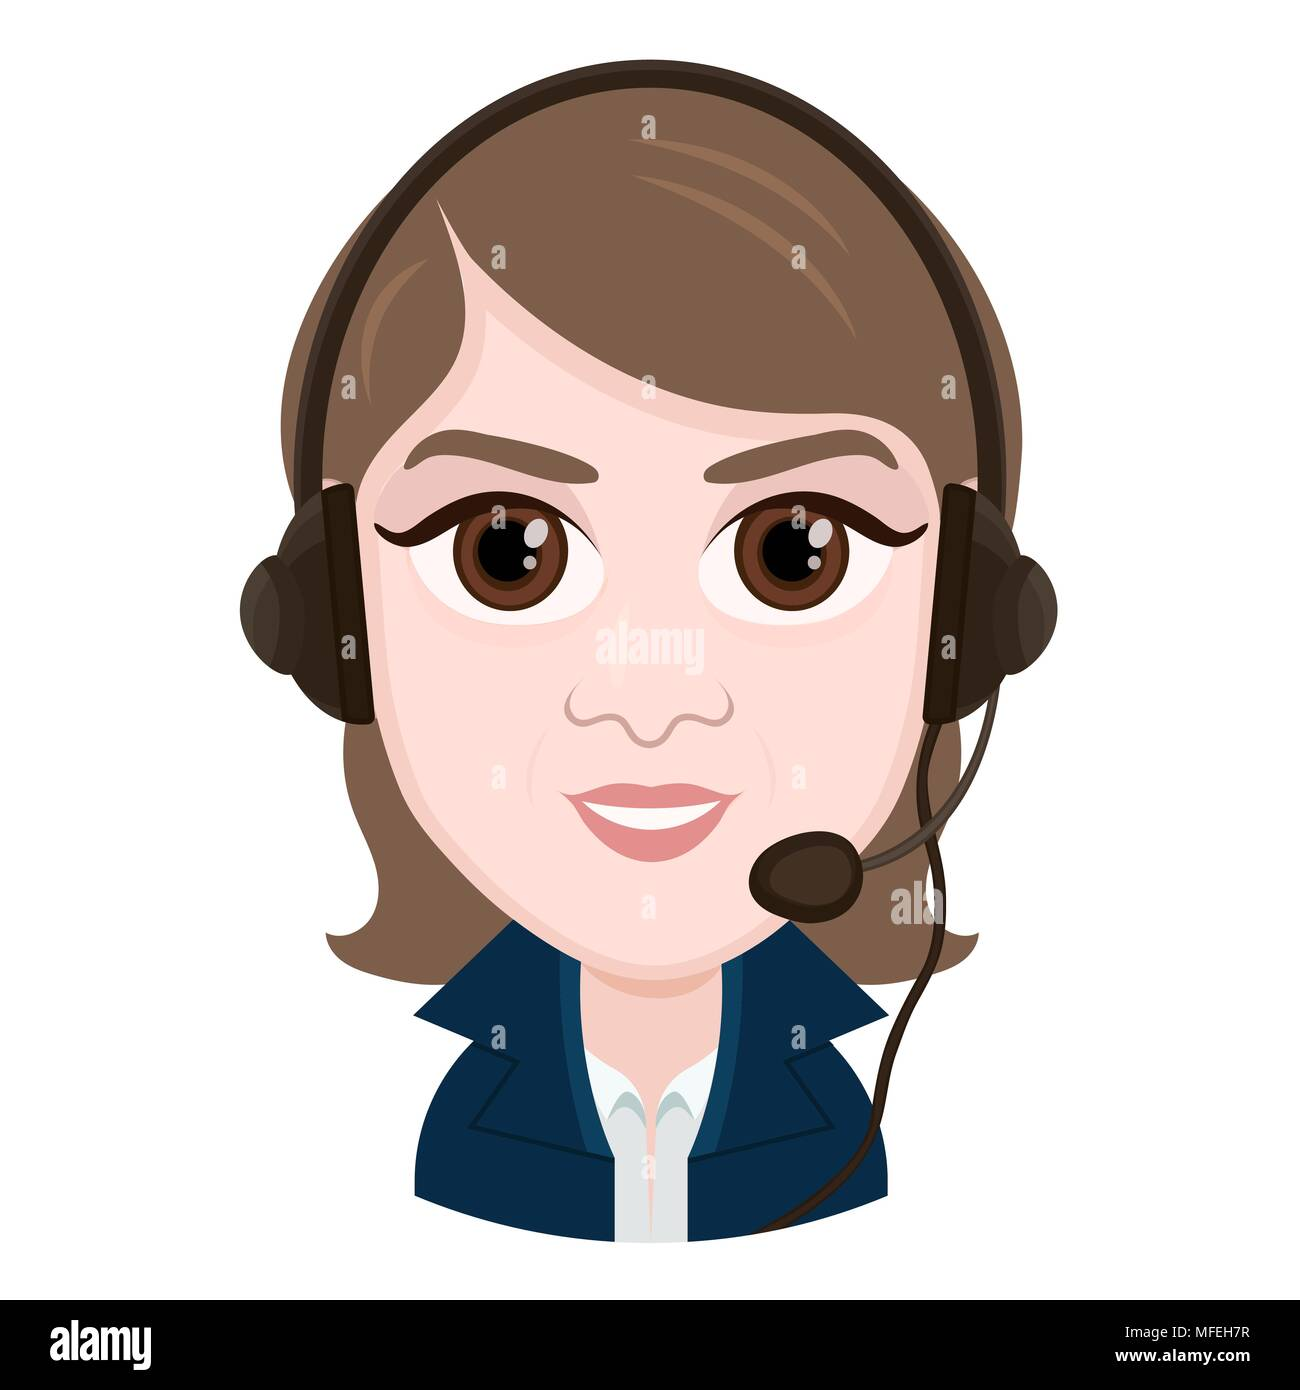 Cartoon character vector drawing portrait girl call center operator smile emotion icon sticker woman with big brown eyes with a headset headphon